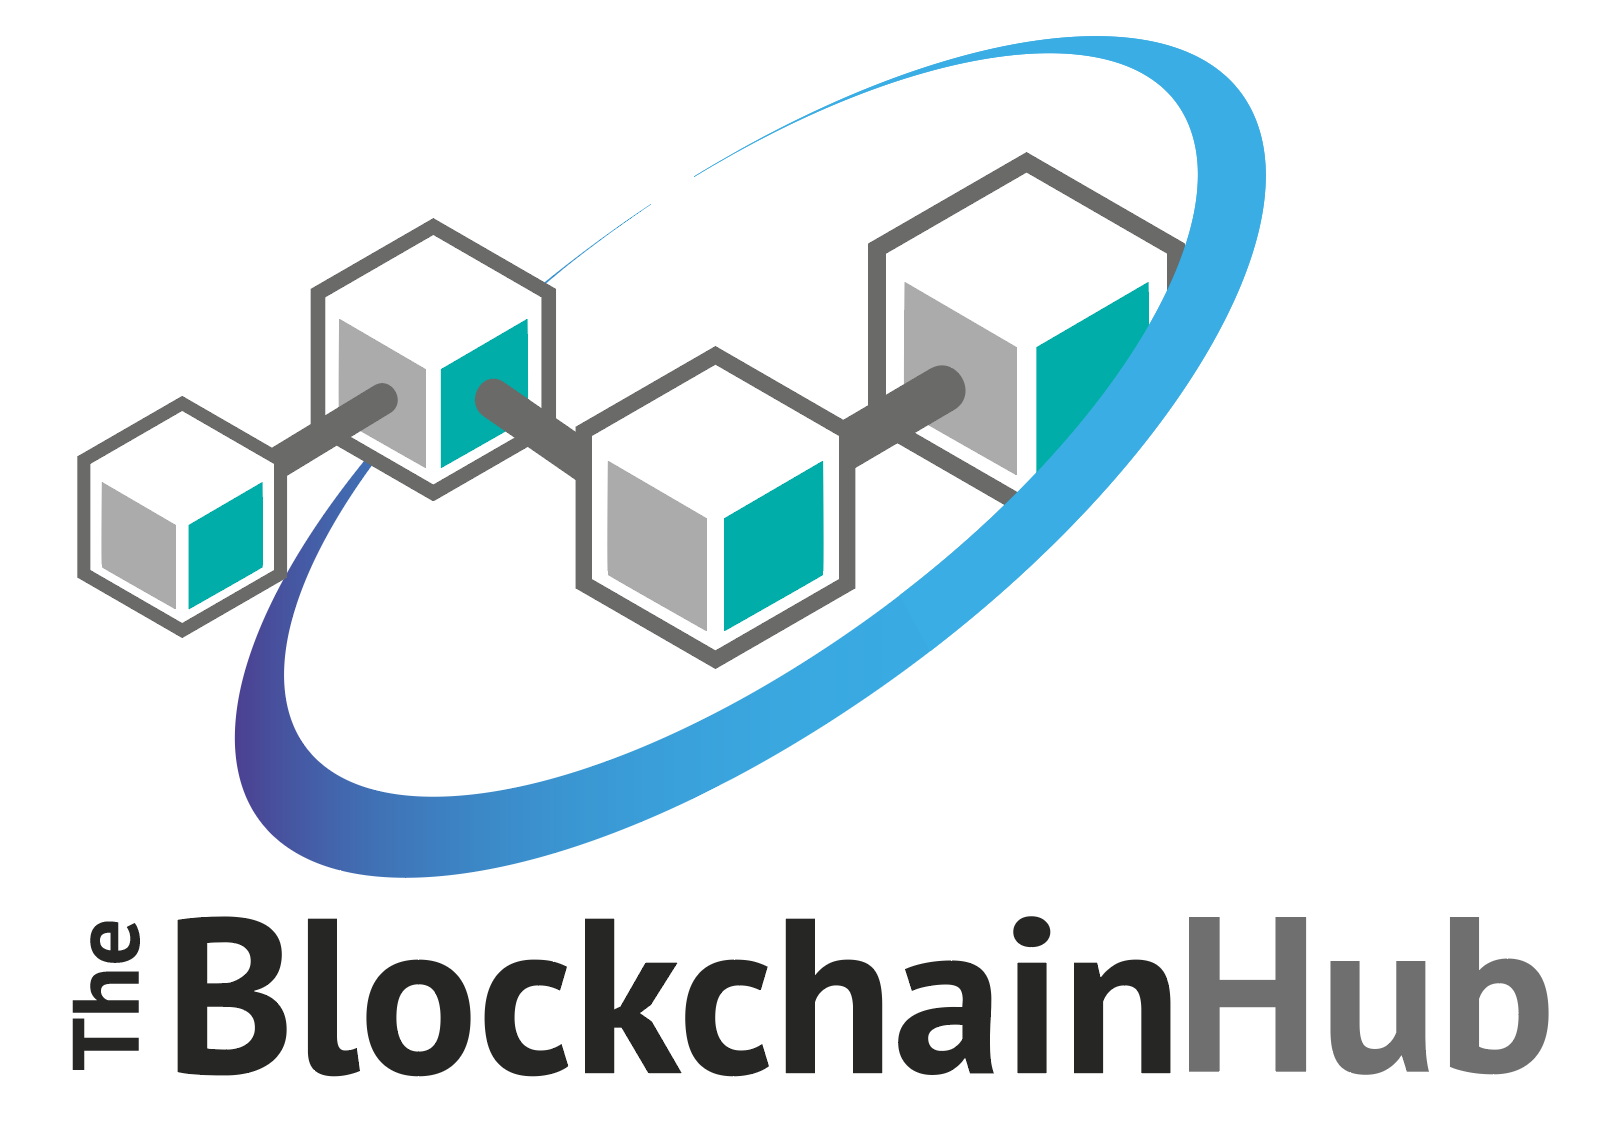 The BlockchainHub.png